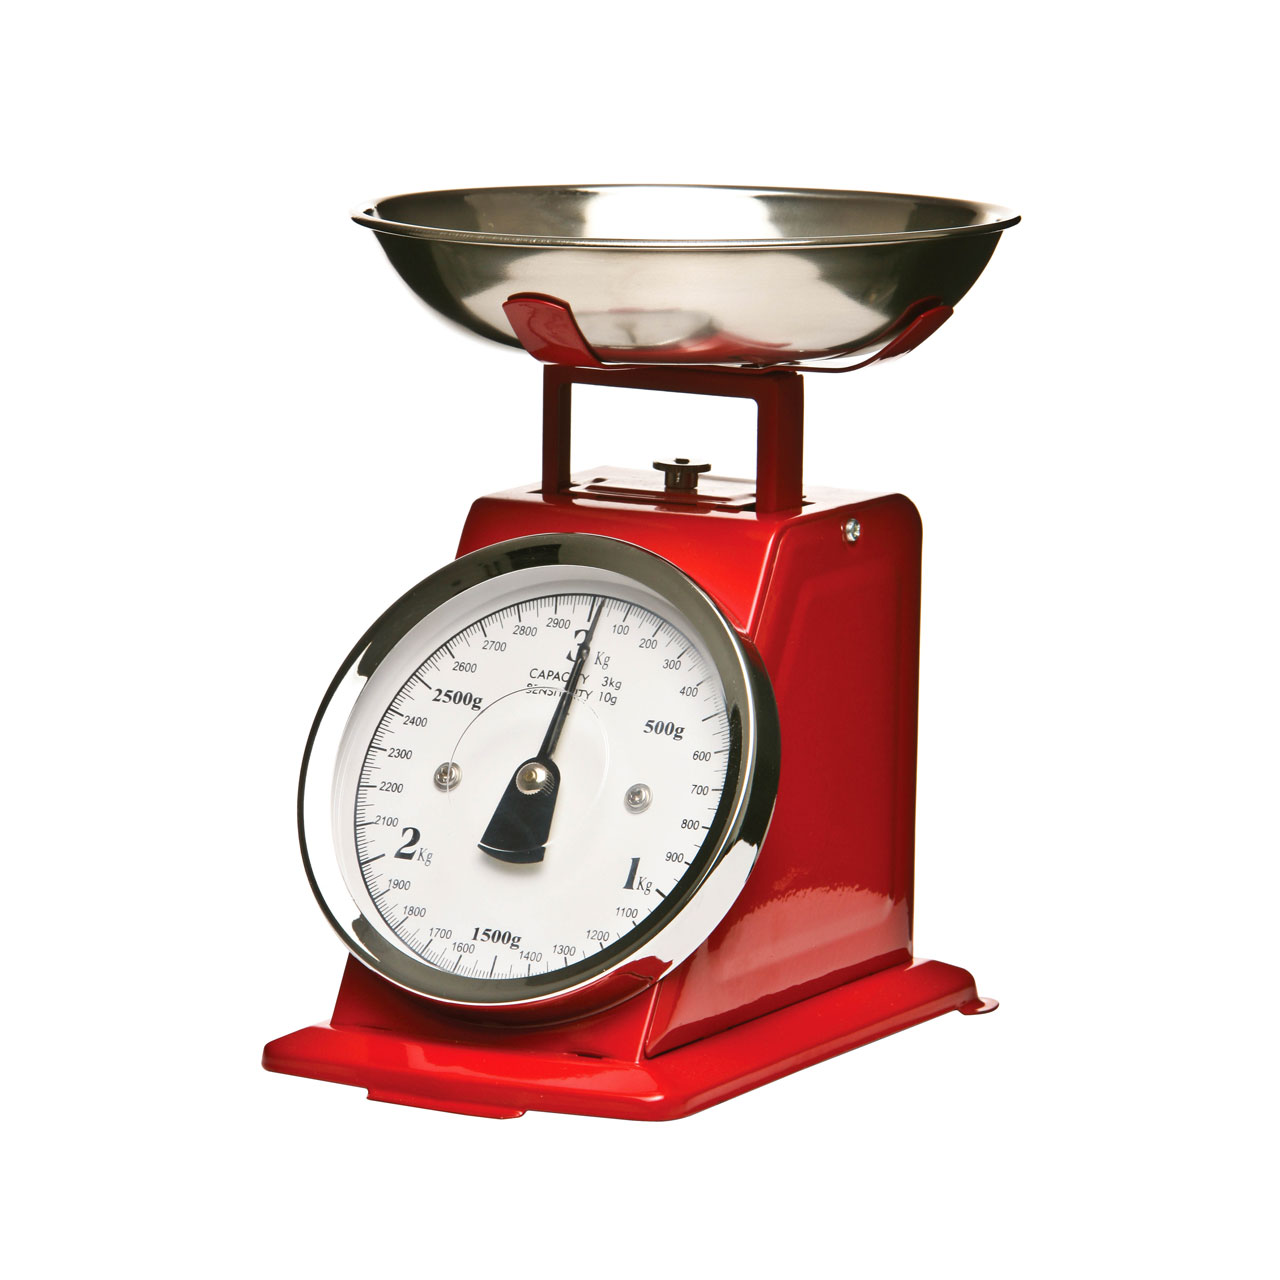 retro traditional kitchen scale stainless steel 3kg baking